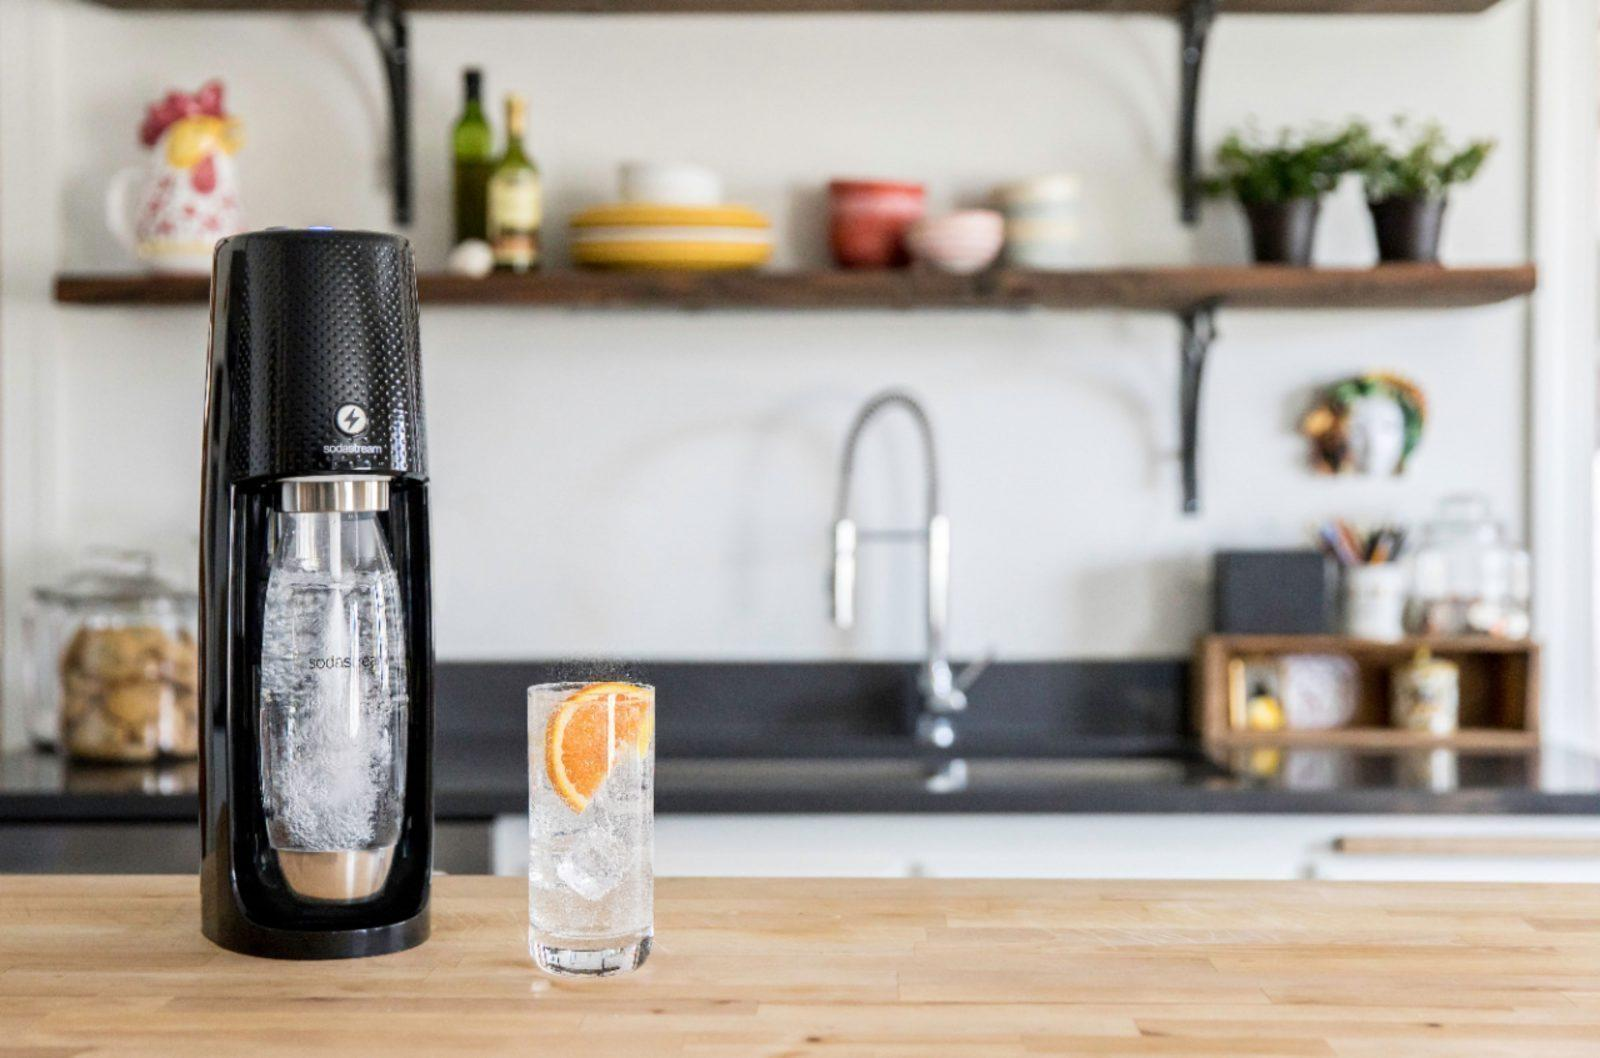 SodaStream Fizzi One Touch - For Sparkling Water Fanatics